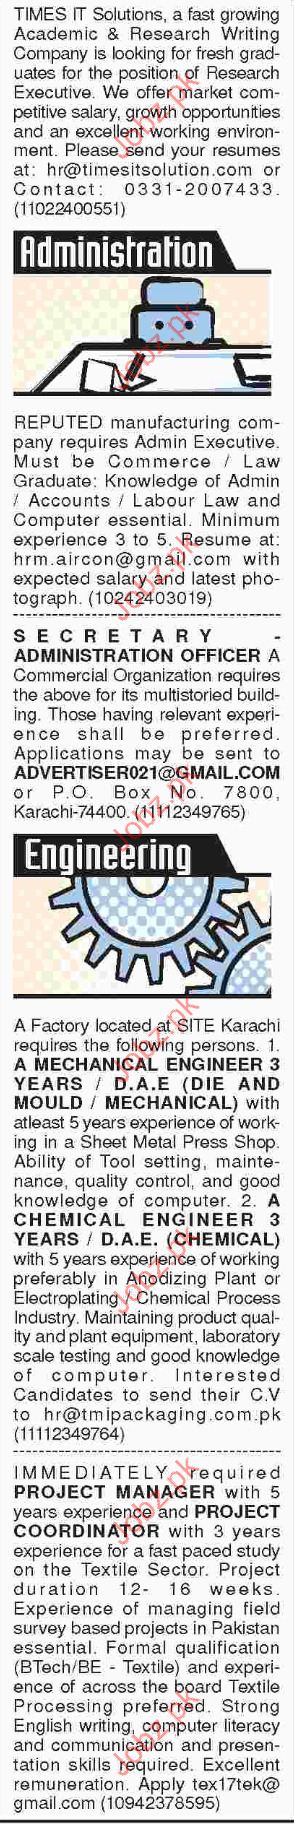 Admin & Accounts Jobs In Manufacturing Company